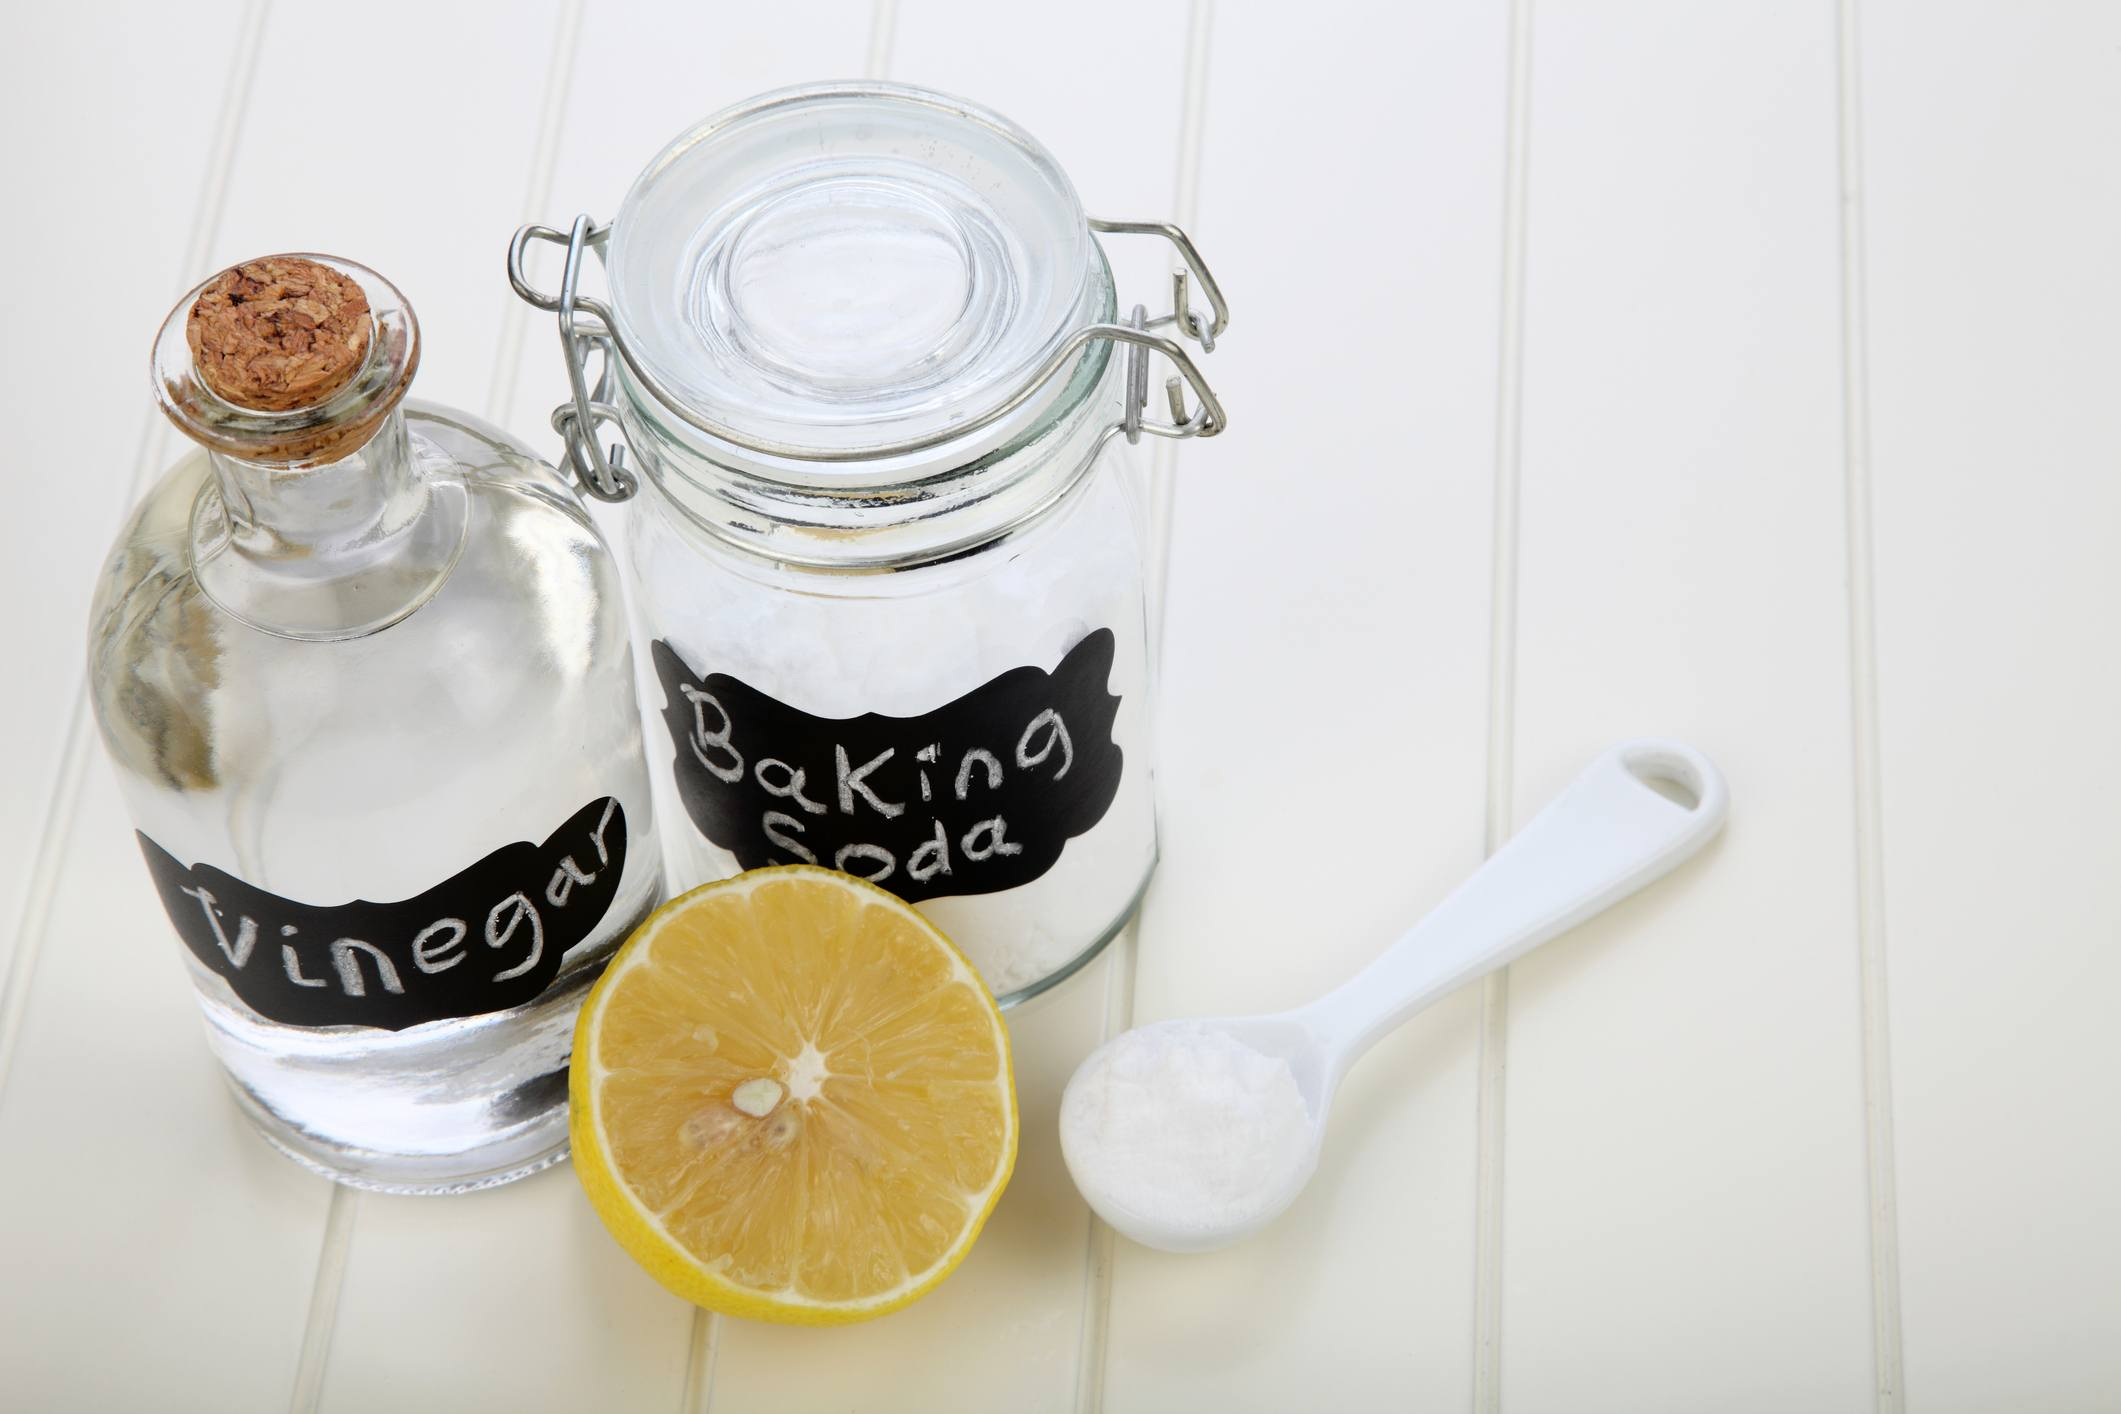 Baking soda vinegar cleaning